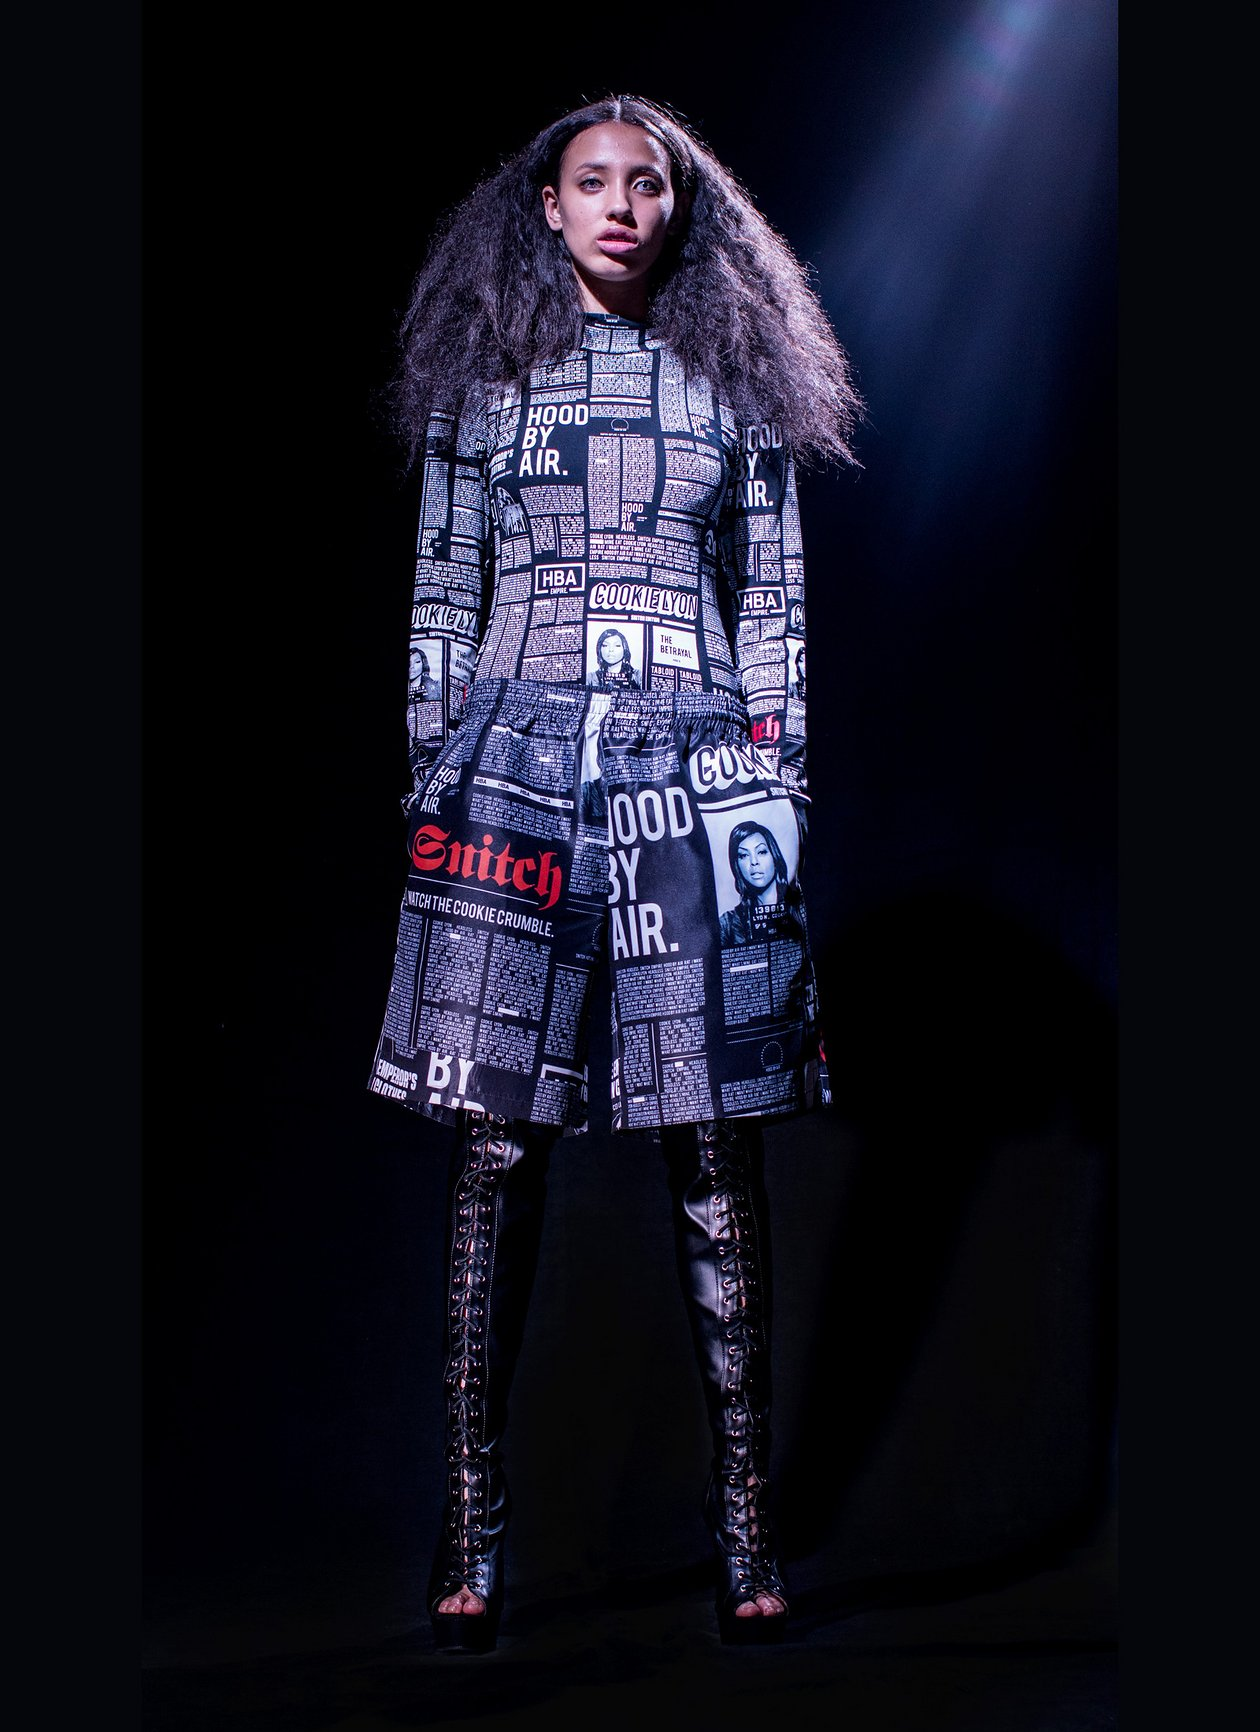 Empire News outfit from HBA